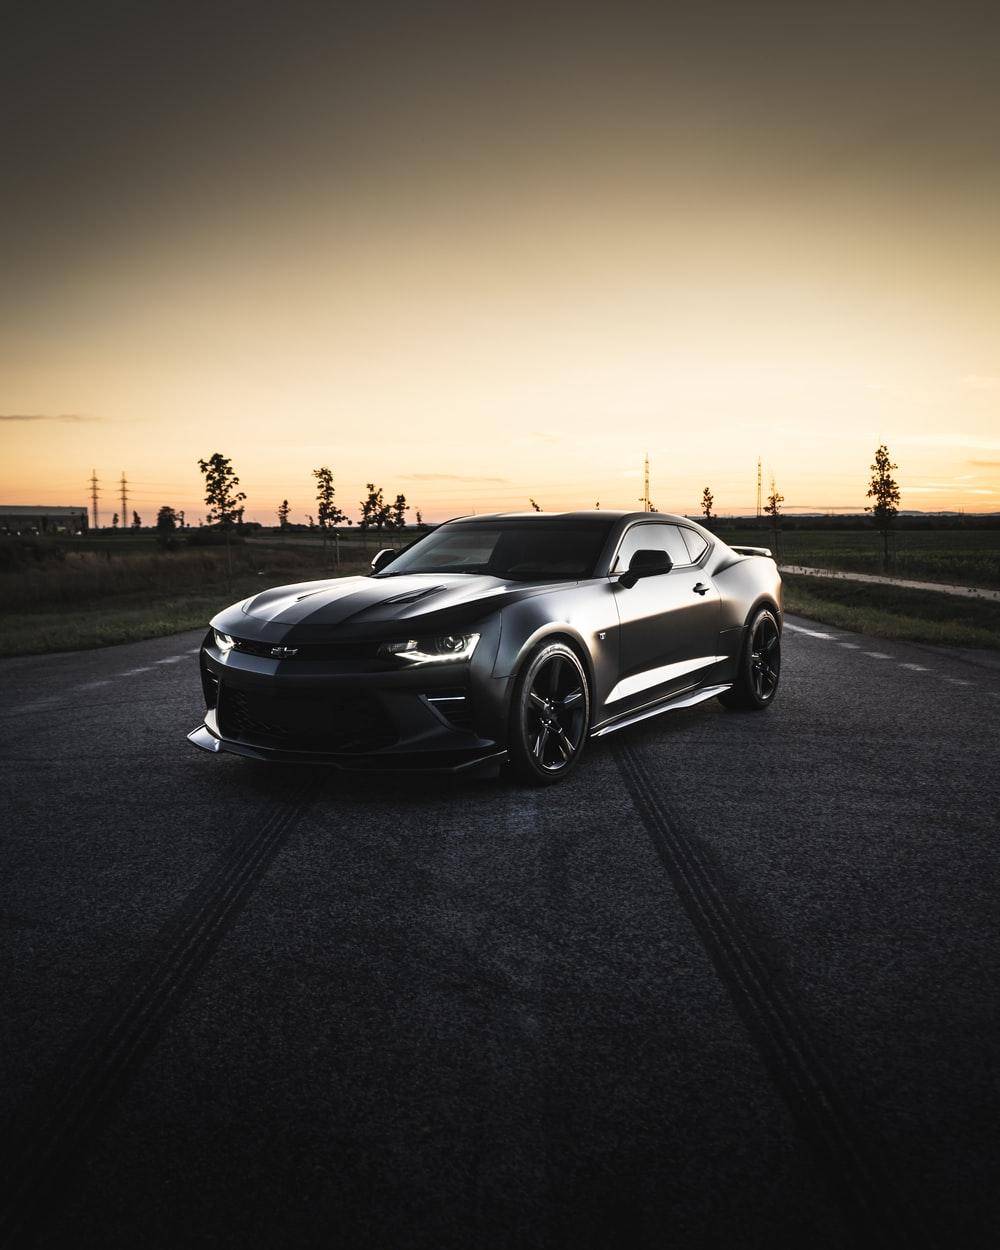 black coupe on road during sunset